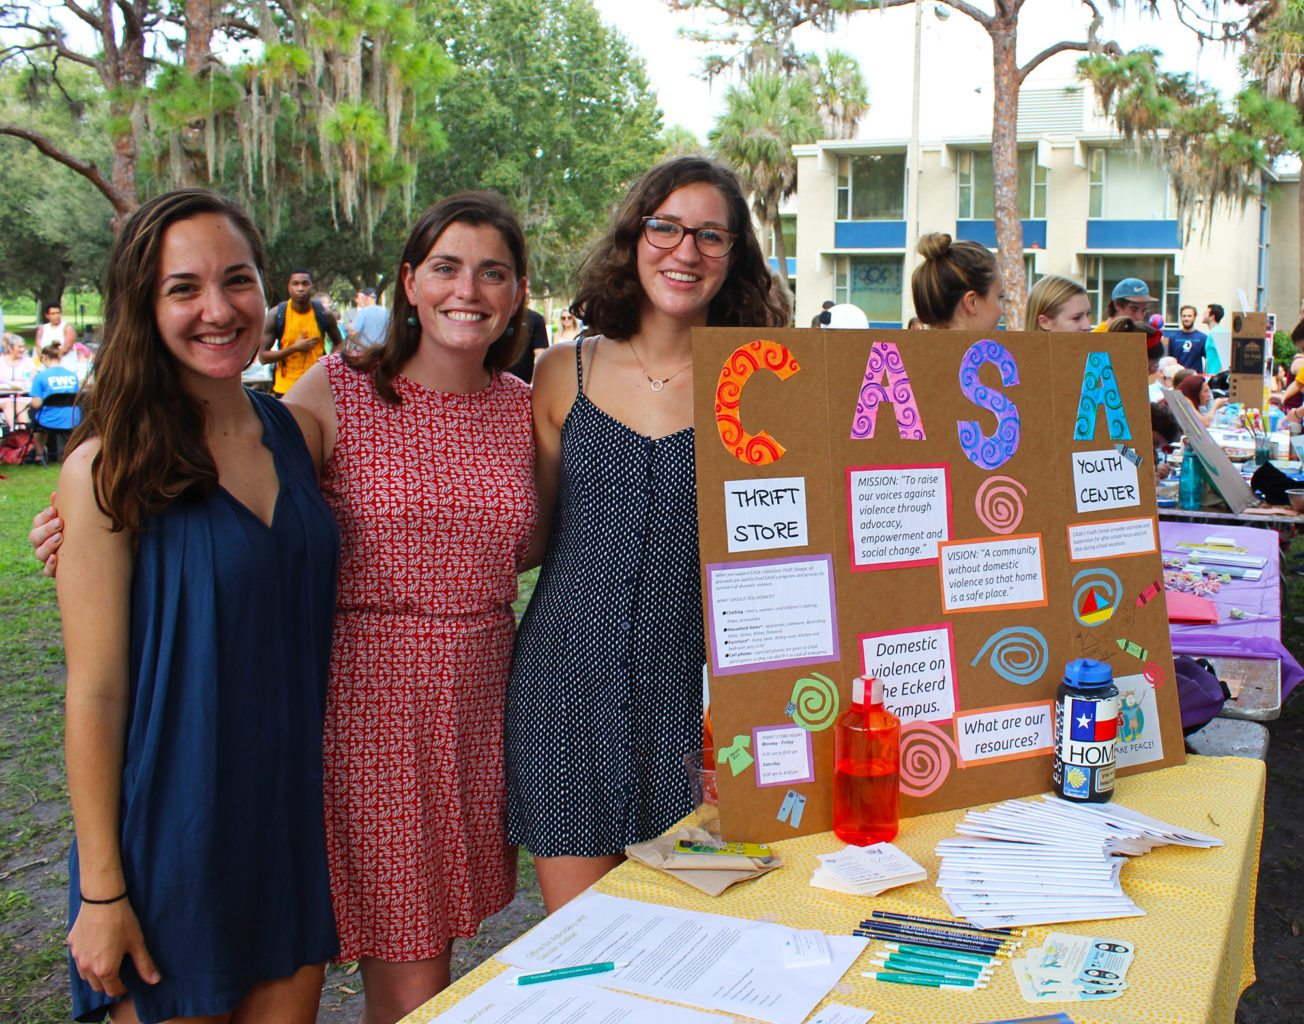 Senior capstone project for CASA non-profit